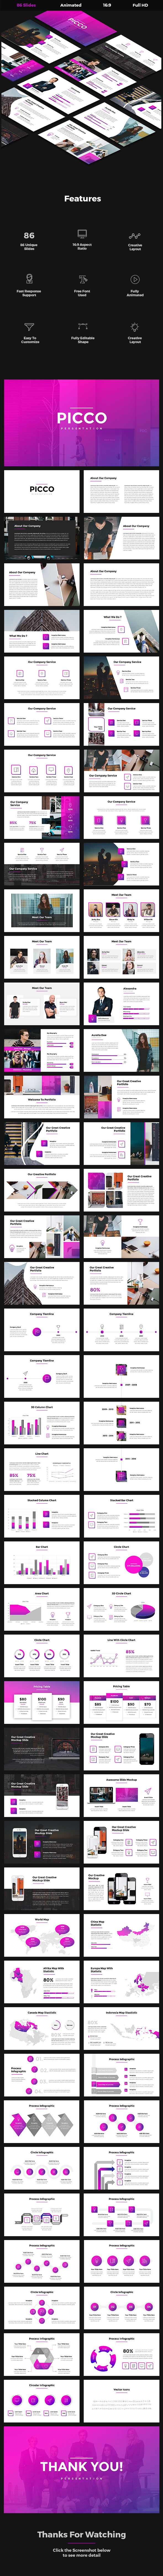 Picco - Creative Google Slides Template - Google Slides Presentation Templates